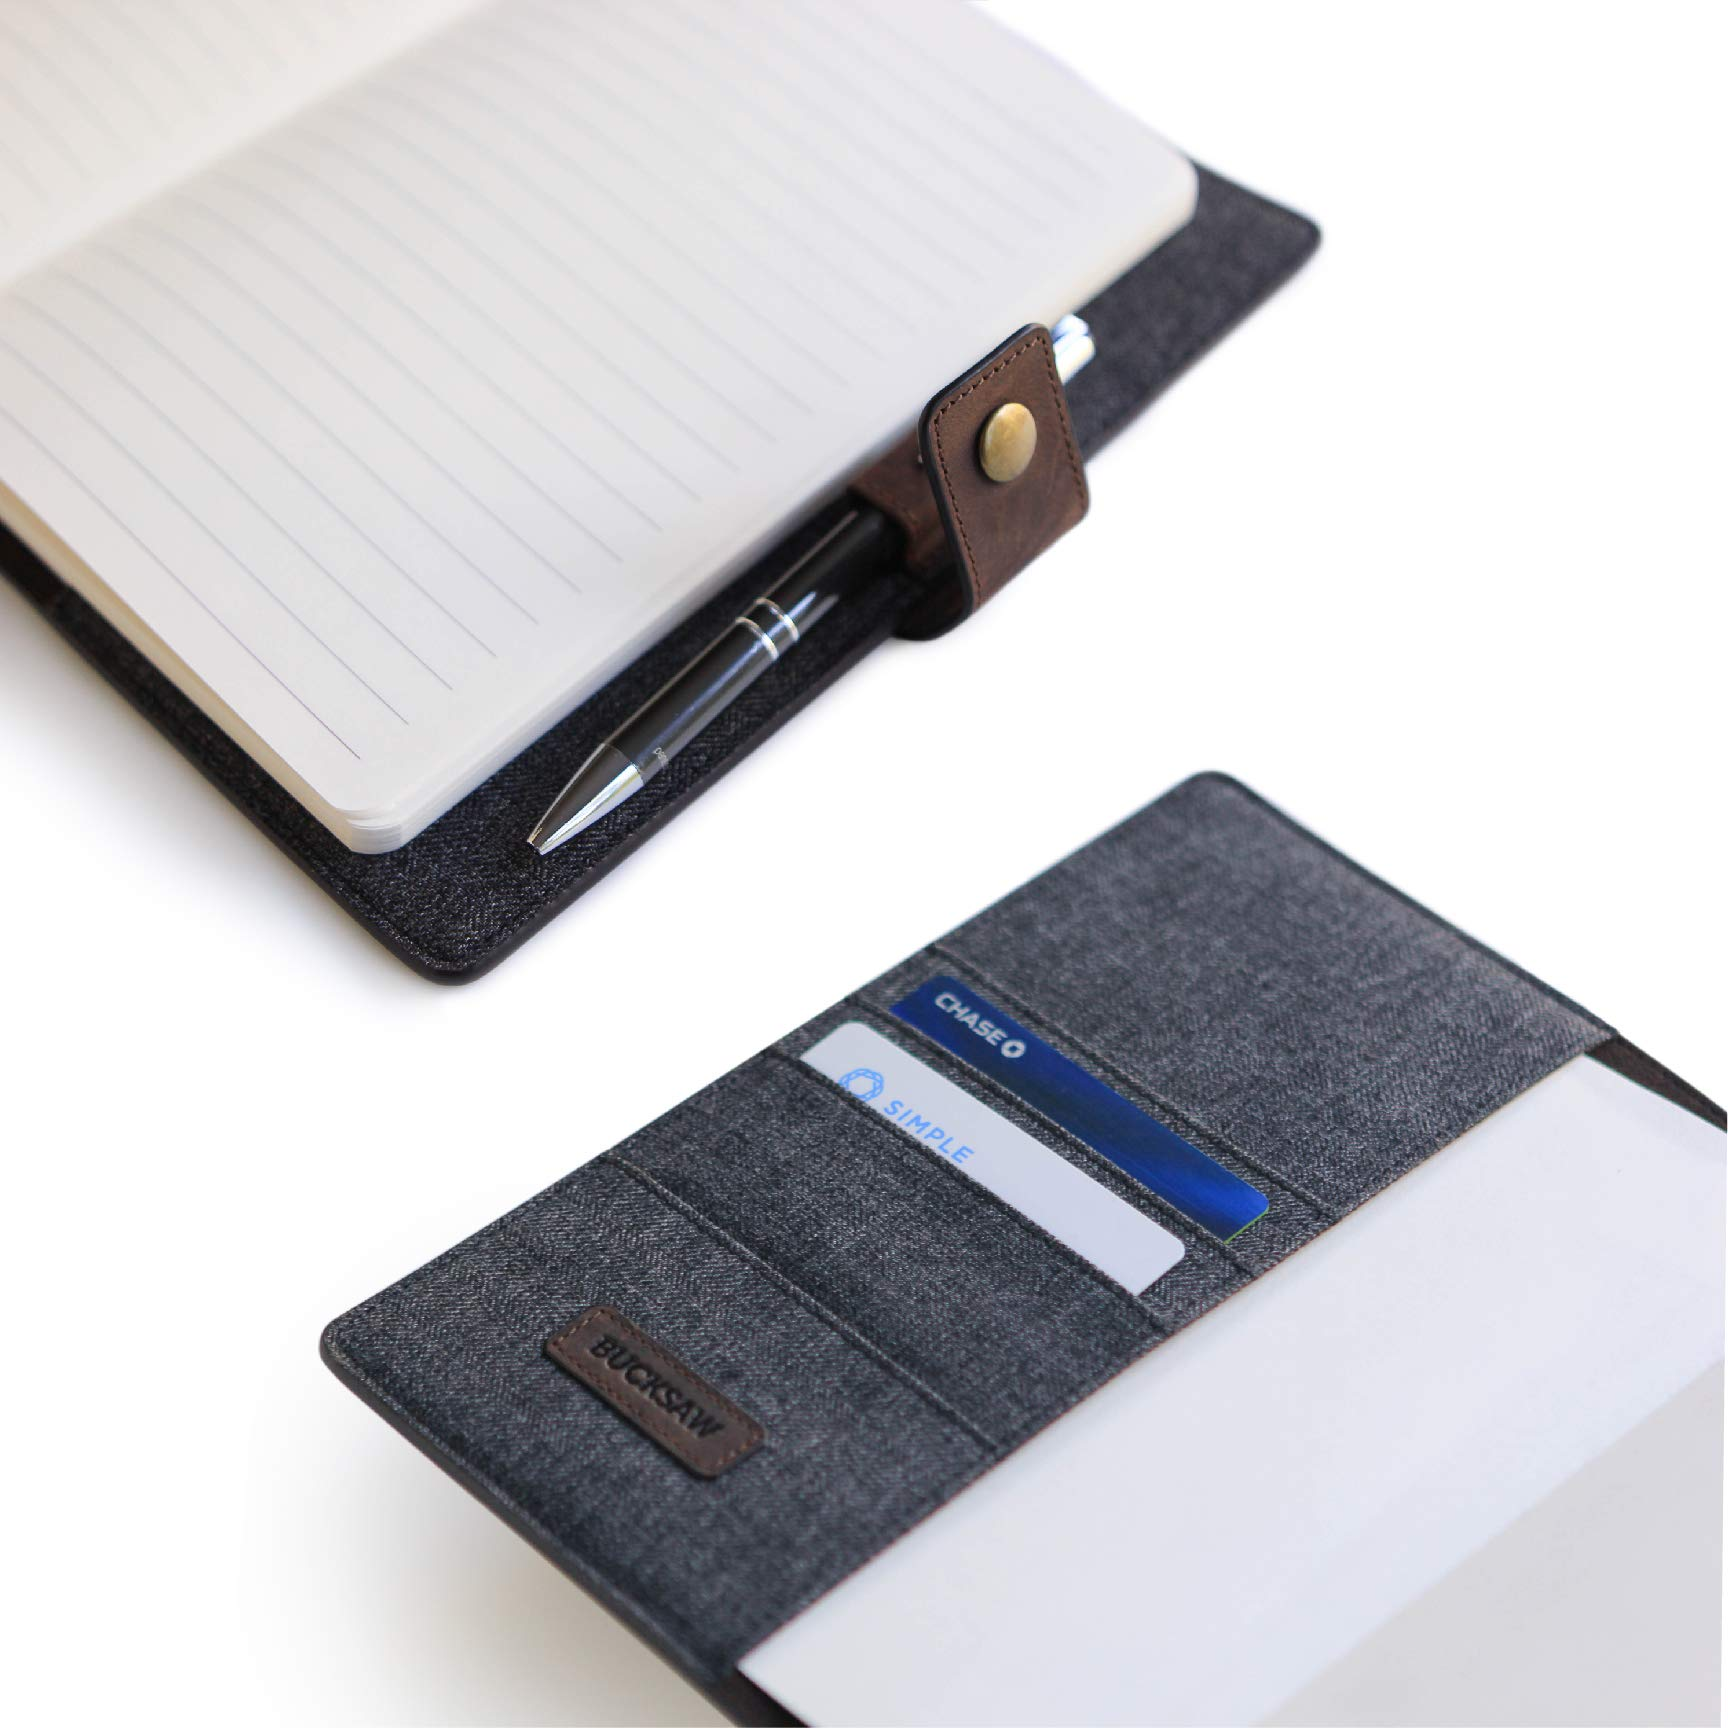 CASE ELEGANCE Full Grain Premium Leather Refillable Journal Cover with A5 Lined Notebook, Pen Loop, Card Slots, & Brass Snap by CASE ELEGANCE (Image #2)